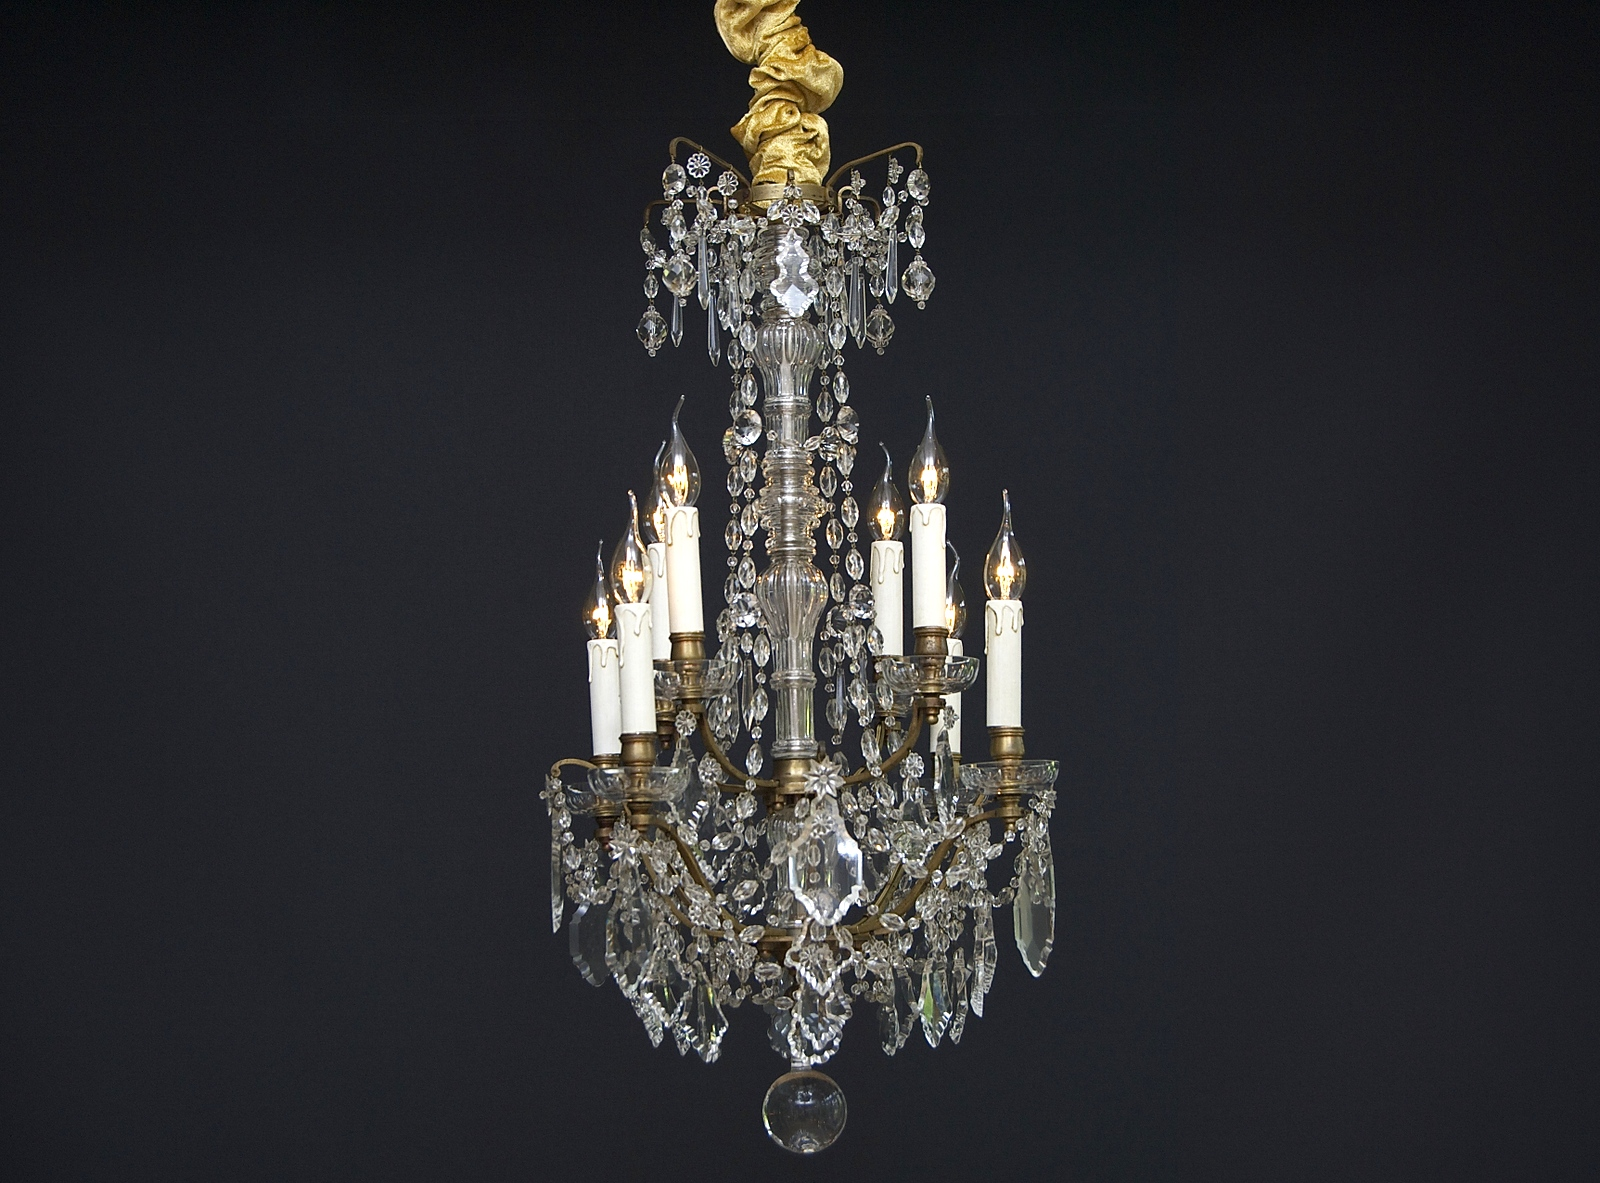 Antique French chandelier with 8 light